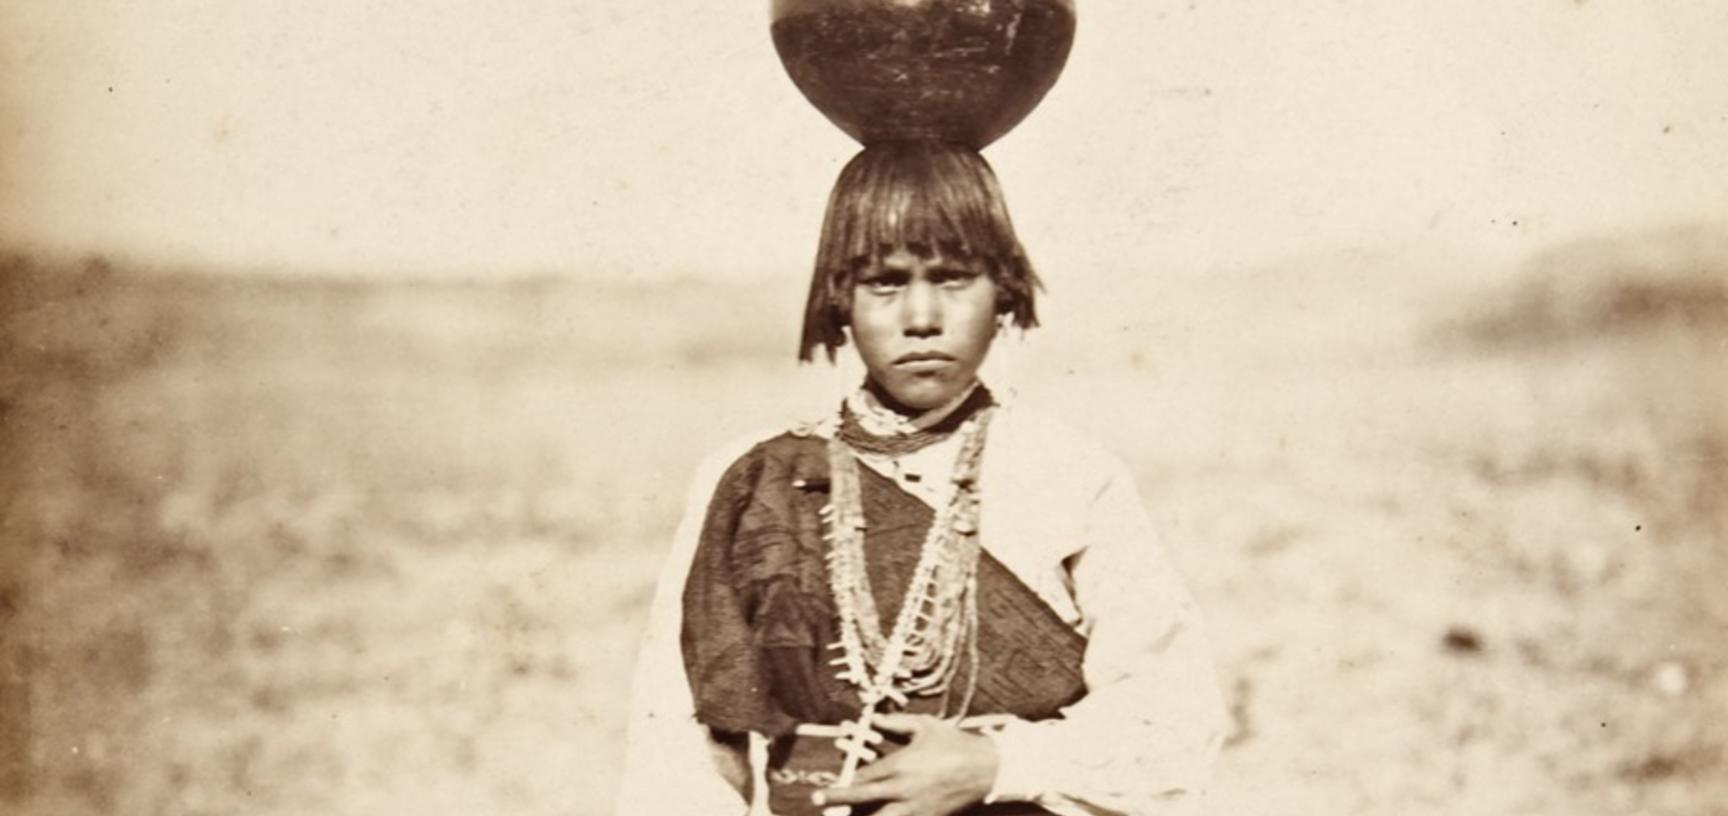 Pabla Tafolla, dressed in a woollen manta of local manufacture, carrying a blackware water jar on her head.